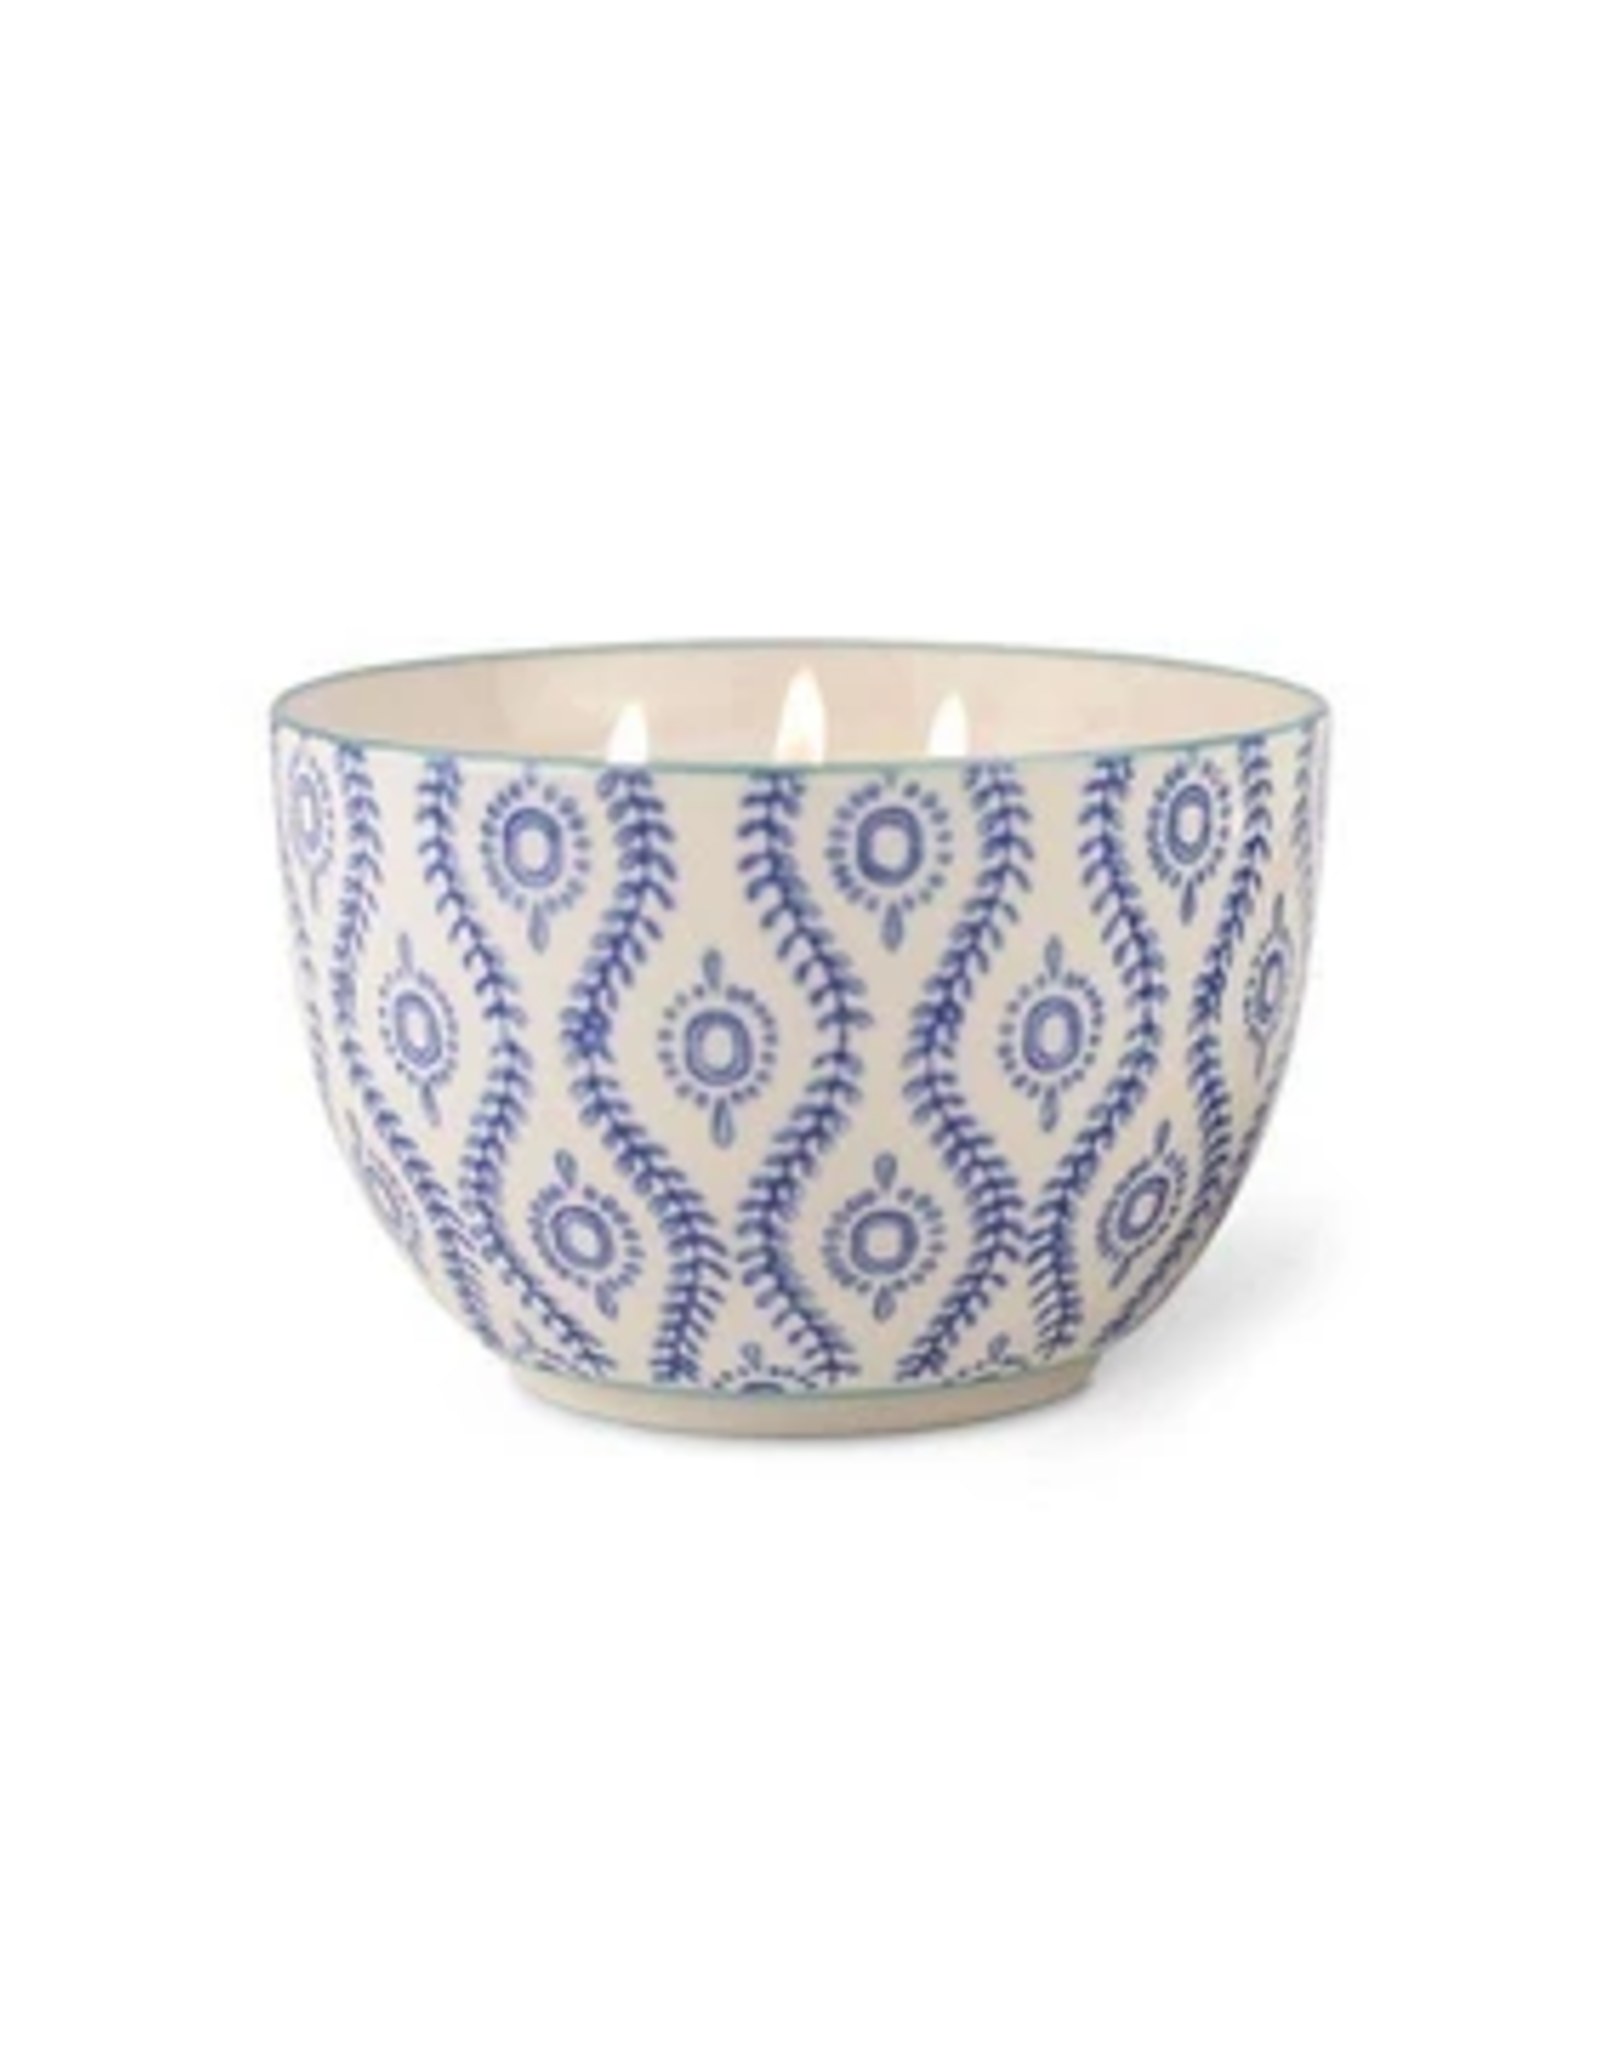 Paddywax Painted Bowl Candle, Large, Vetiver & Vanilla